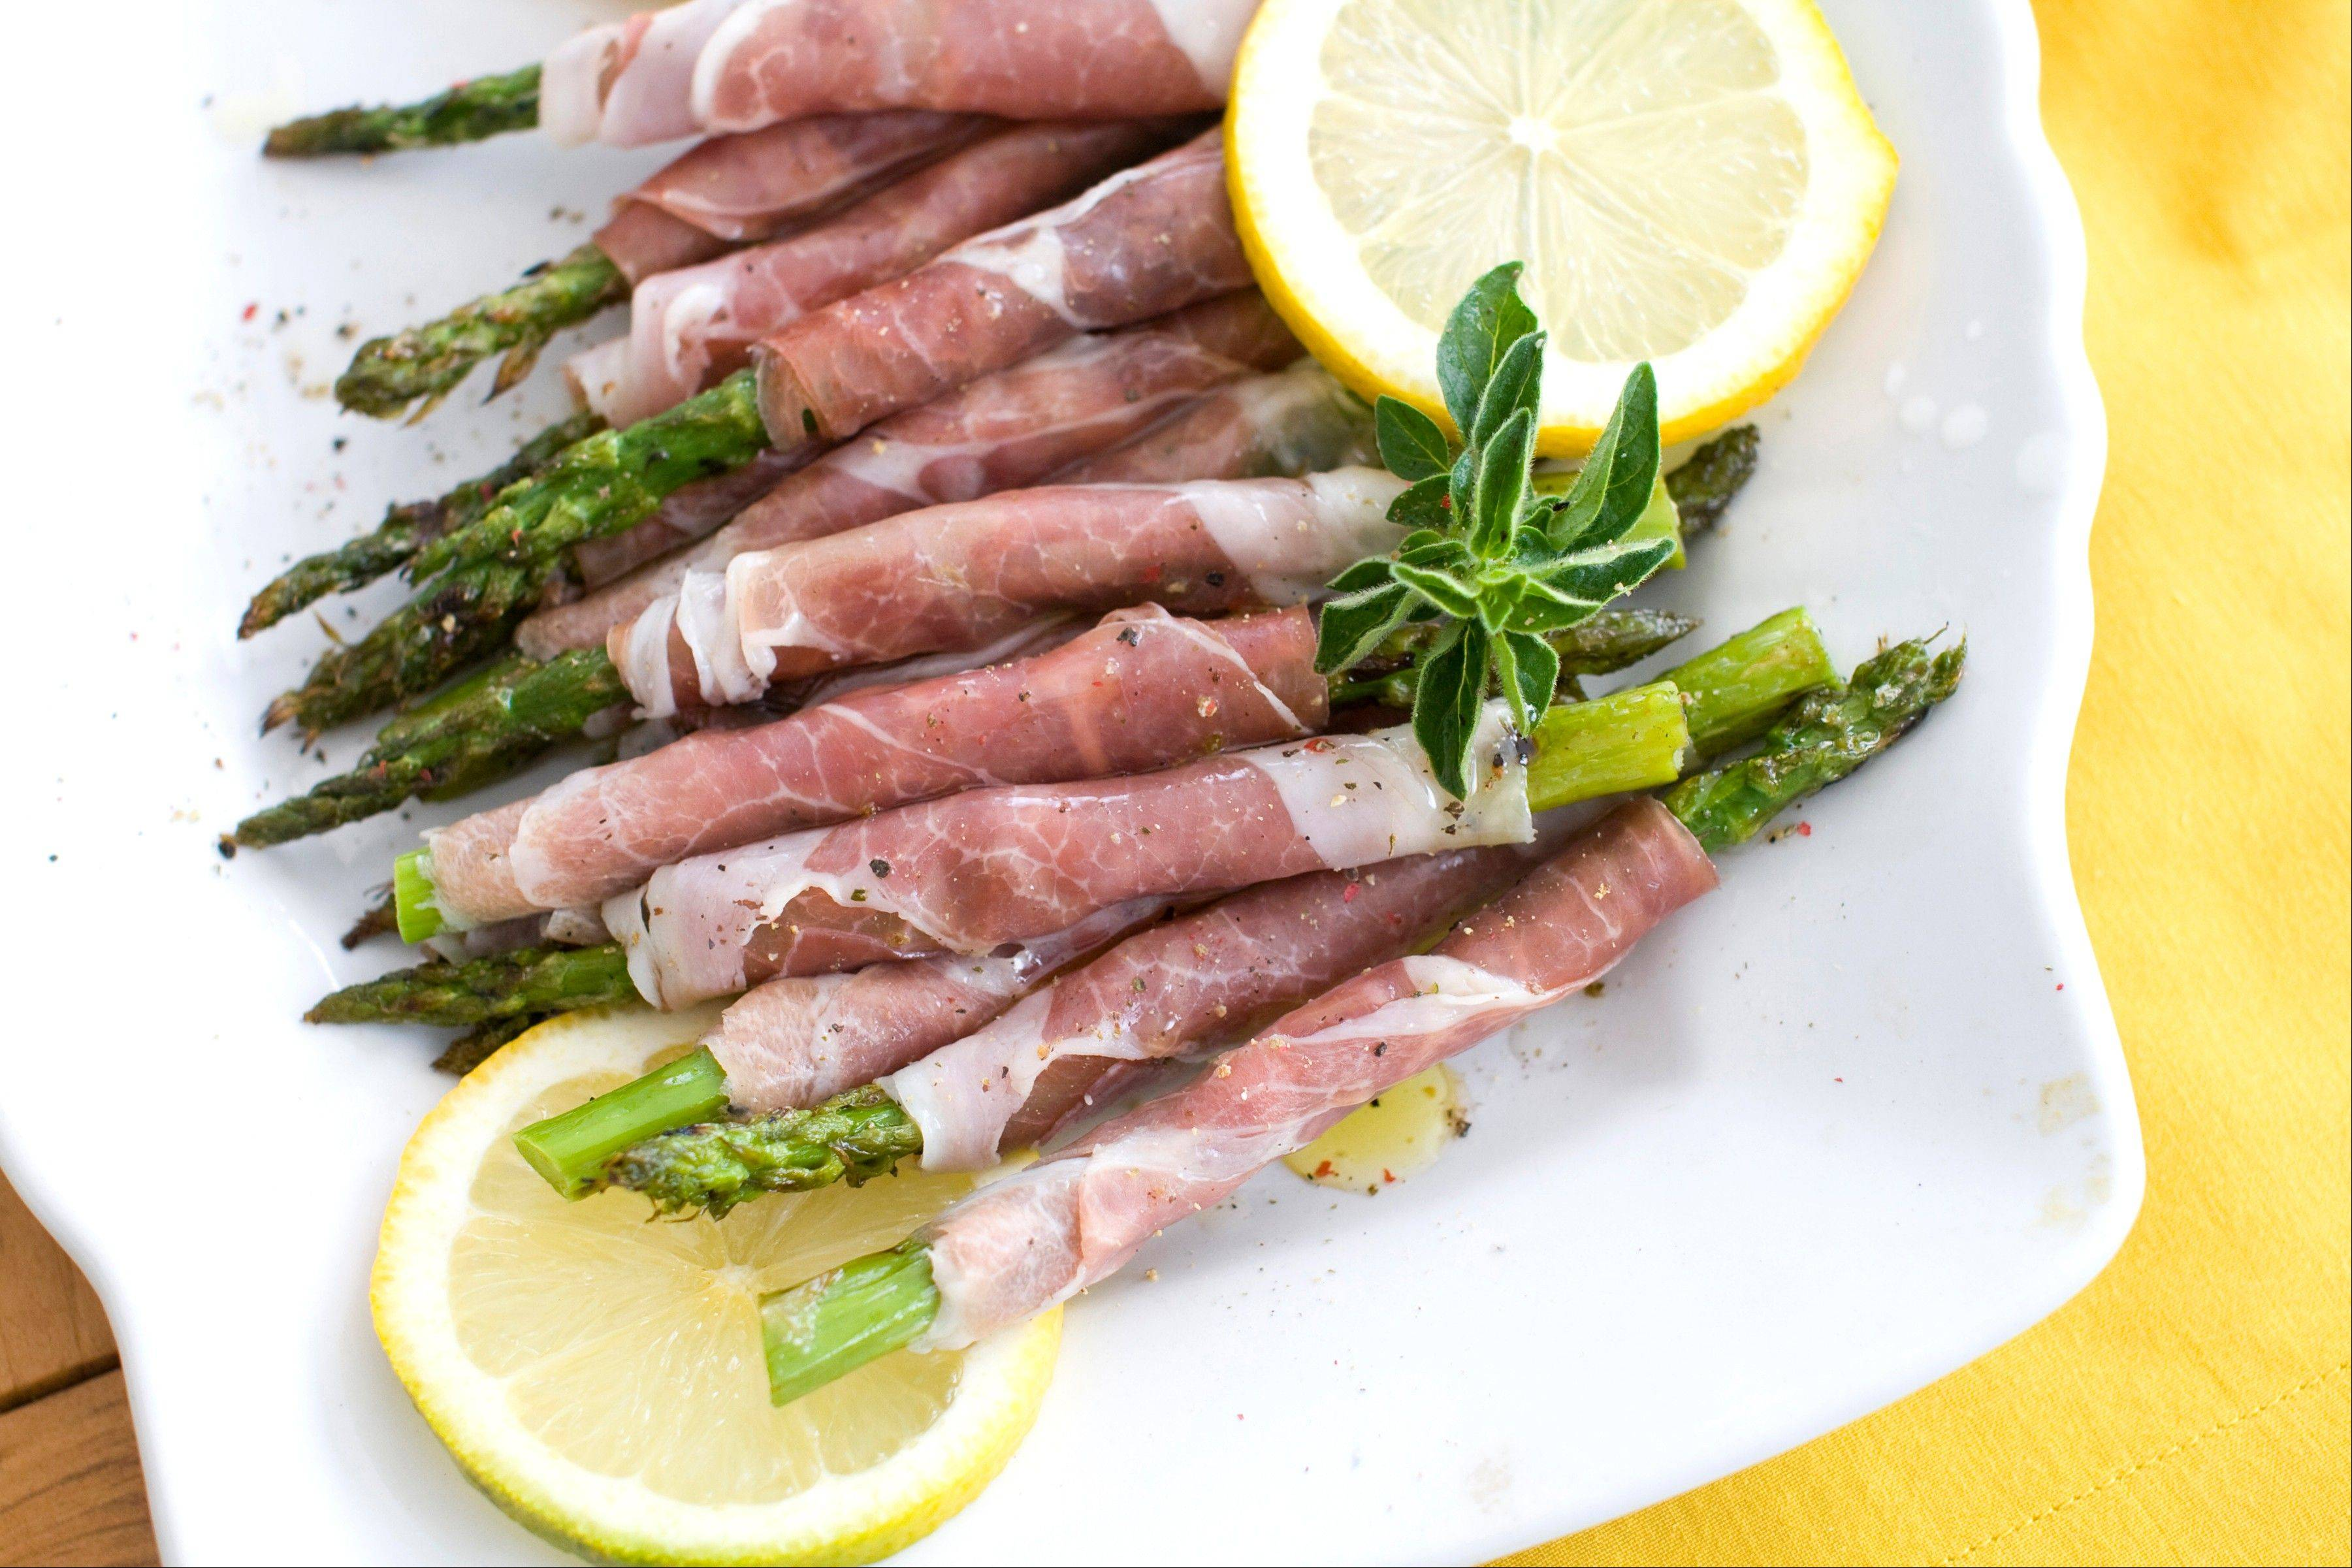 Prosciutto-wrapped grilled asparagus can be eaten on its own as an appetizer or added to a salad with fresh mozzarella.